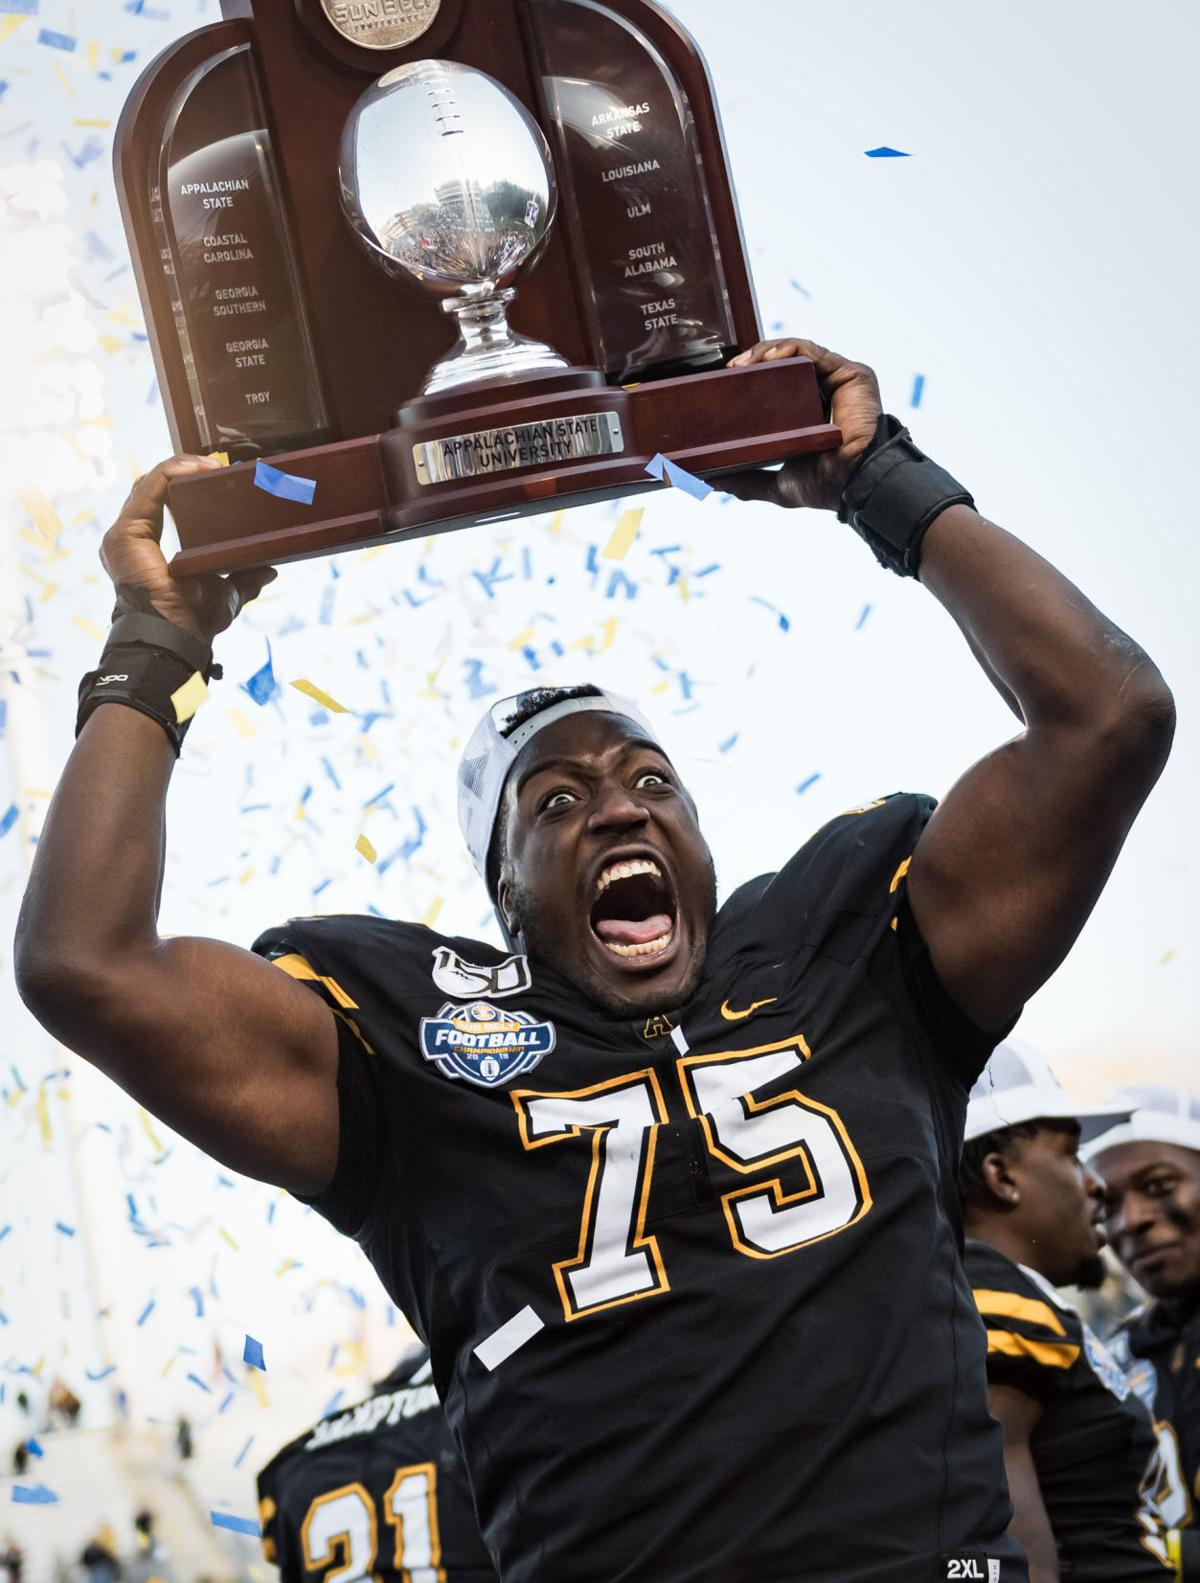 Photos Appalachian State 45 38 Over Louisiana To Win Sun Belt Football Conference Championship Galleries Journalnow Com